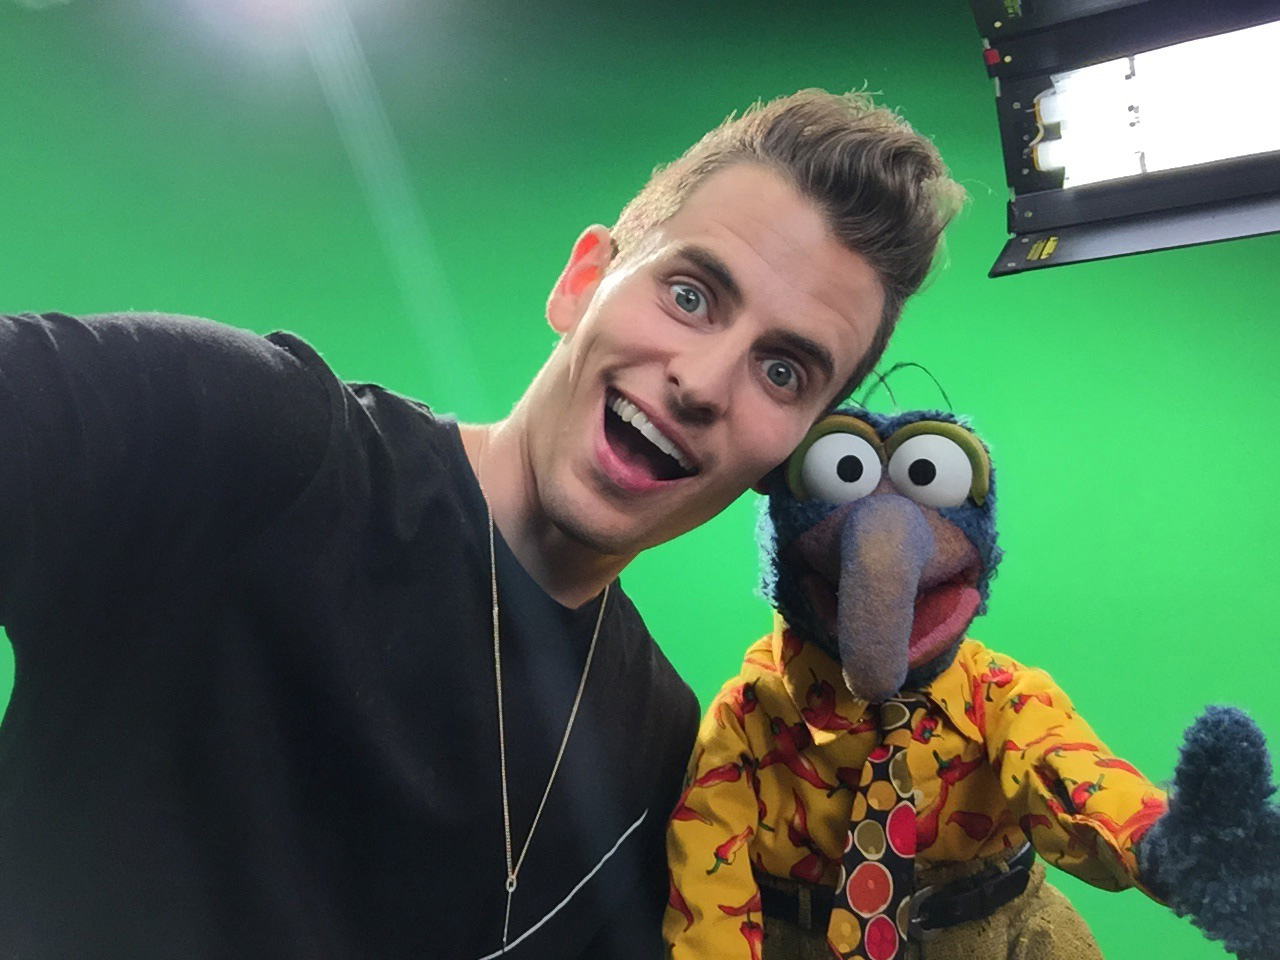 The Muppets to team up with several YouTube stars